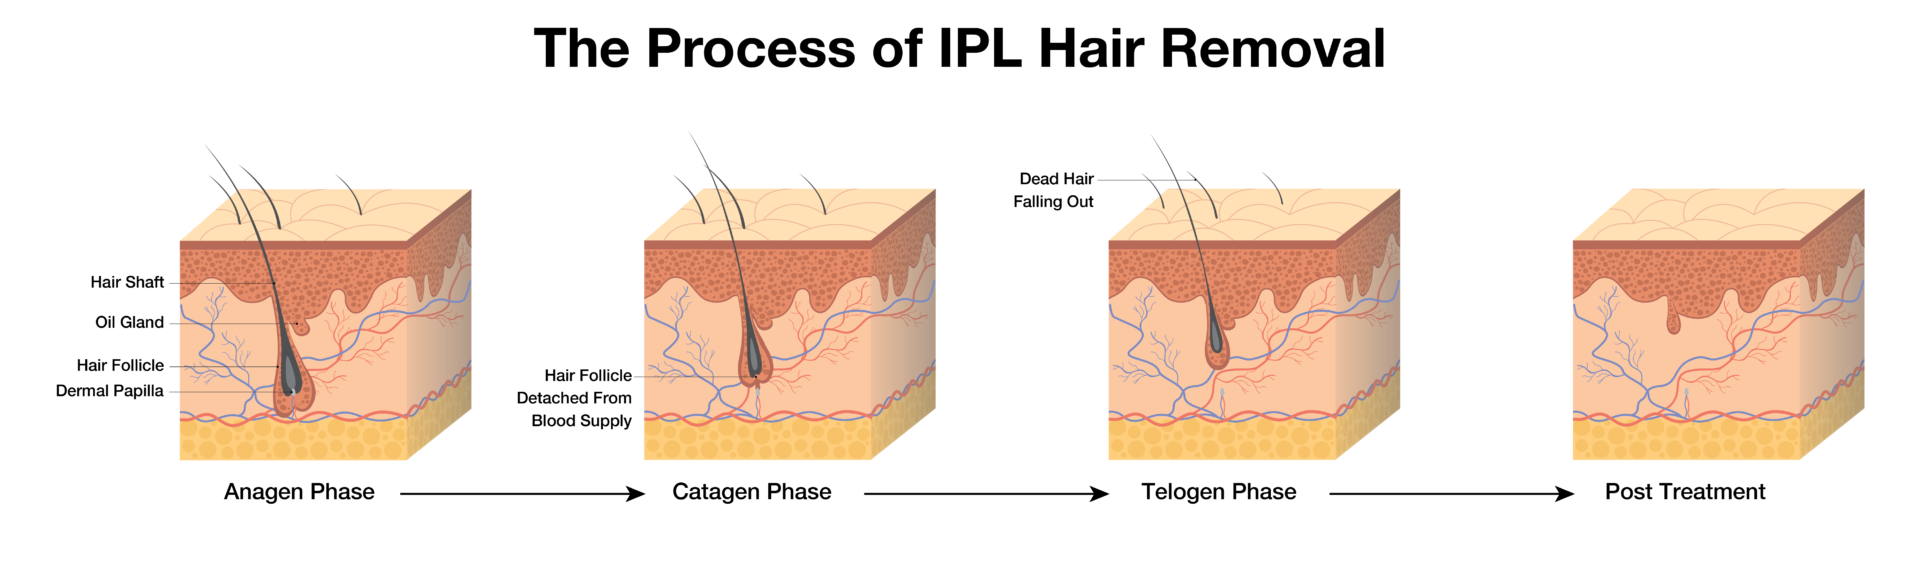 The-Process-of-IPL-Hair-Removal-Diagram-1920x586